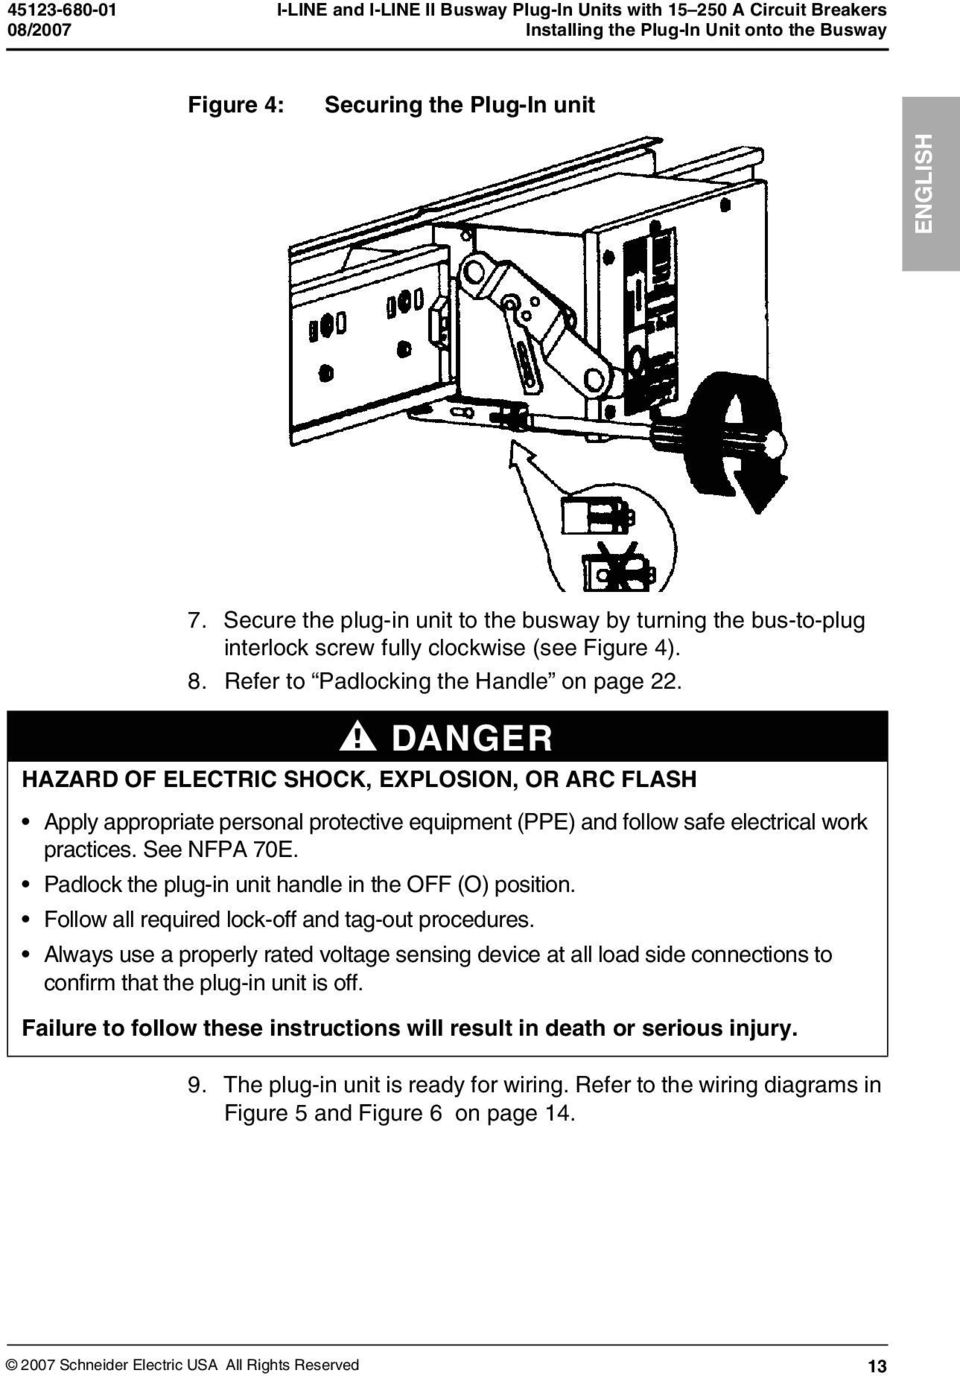 I Line And Ii Busway Plug In Units With A Circuit Breakers Electrical Bus Wiring Diagram Danger Hazard Of Electric Shock Explosion Or Arc Flash Apply Appropriate Personal Protective Equipment